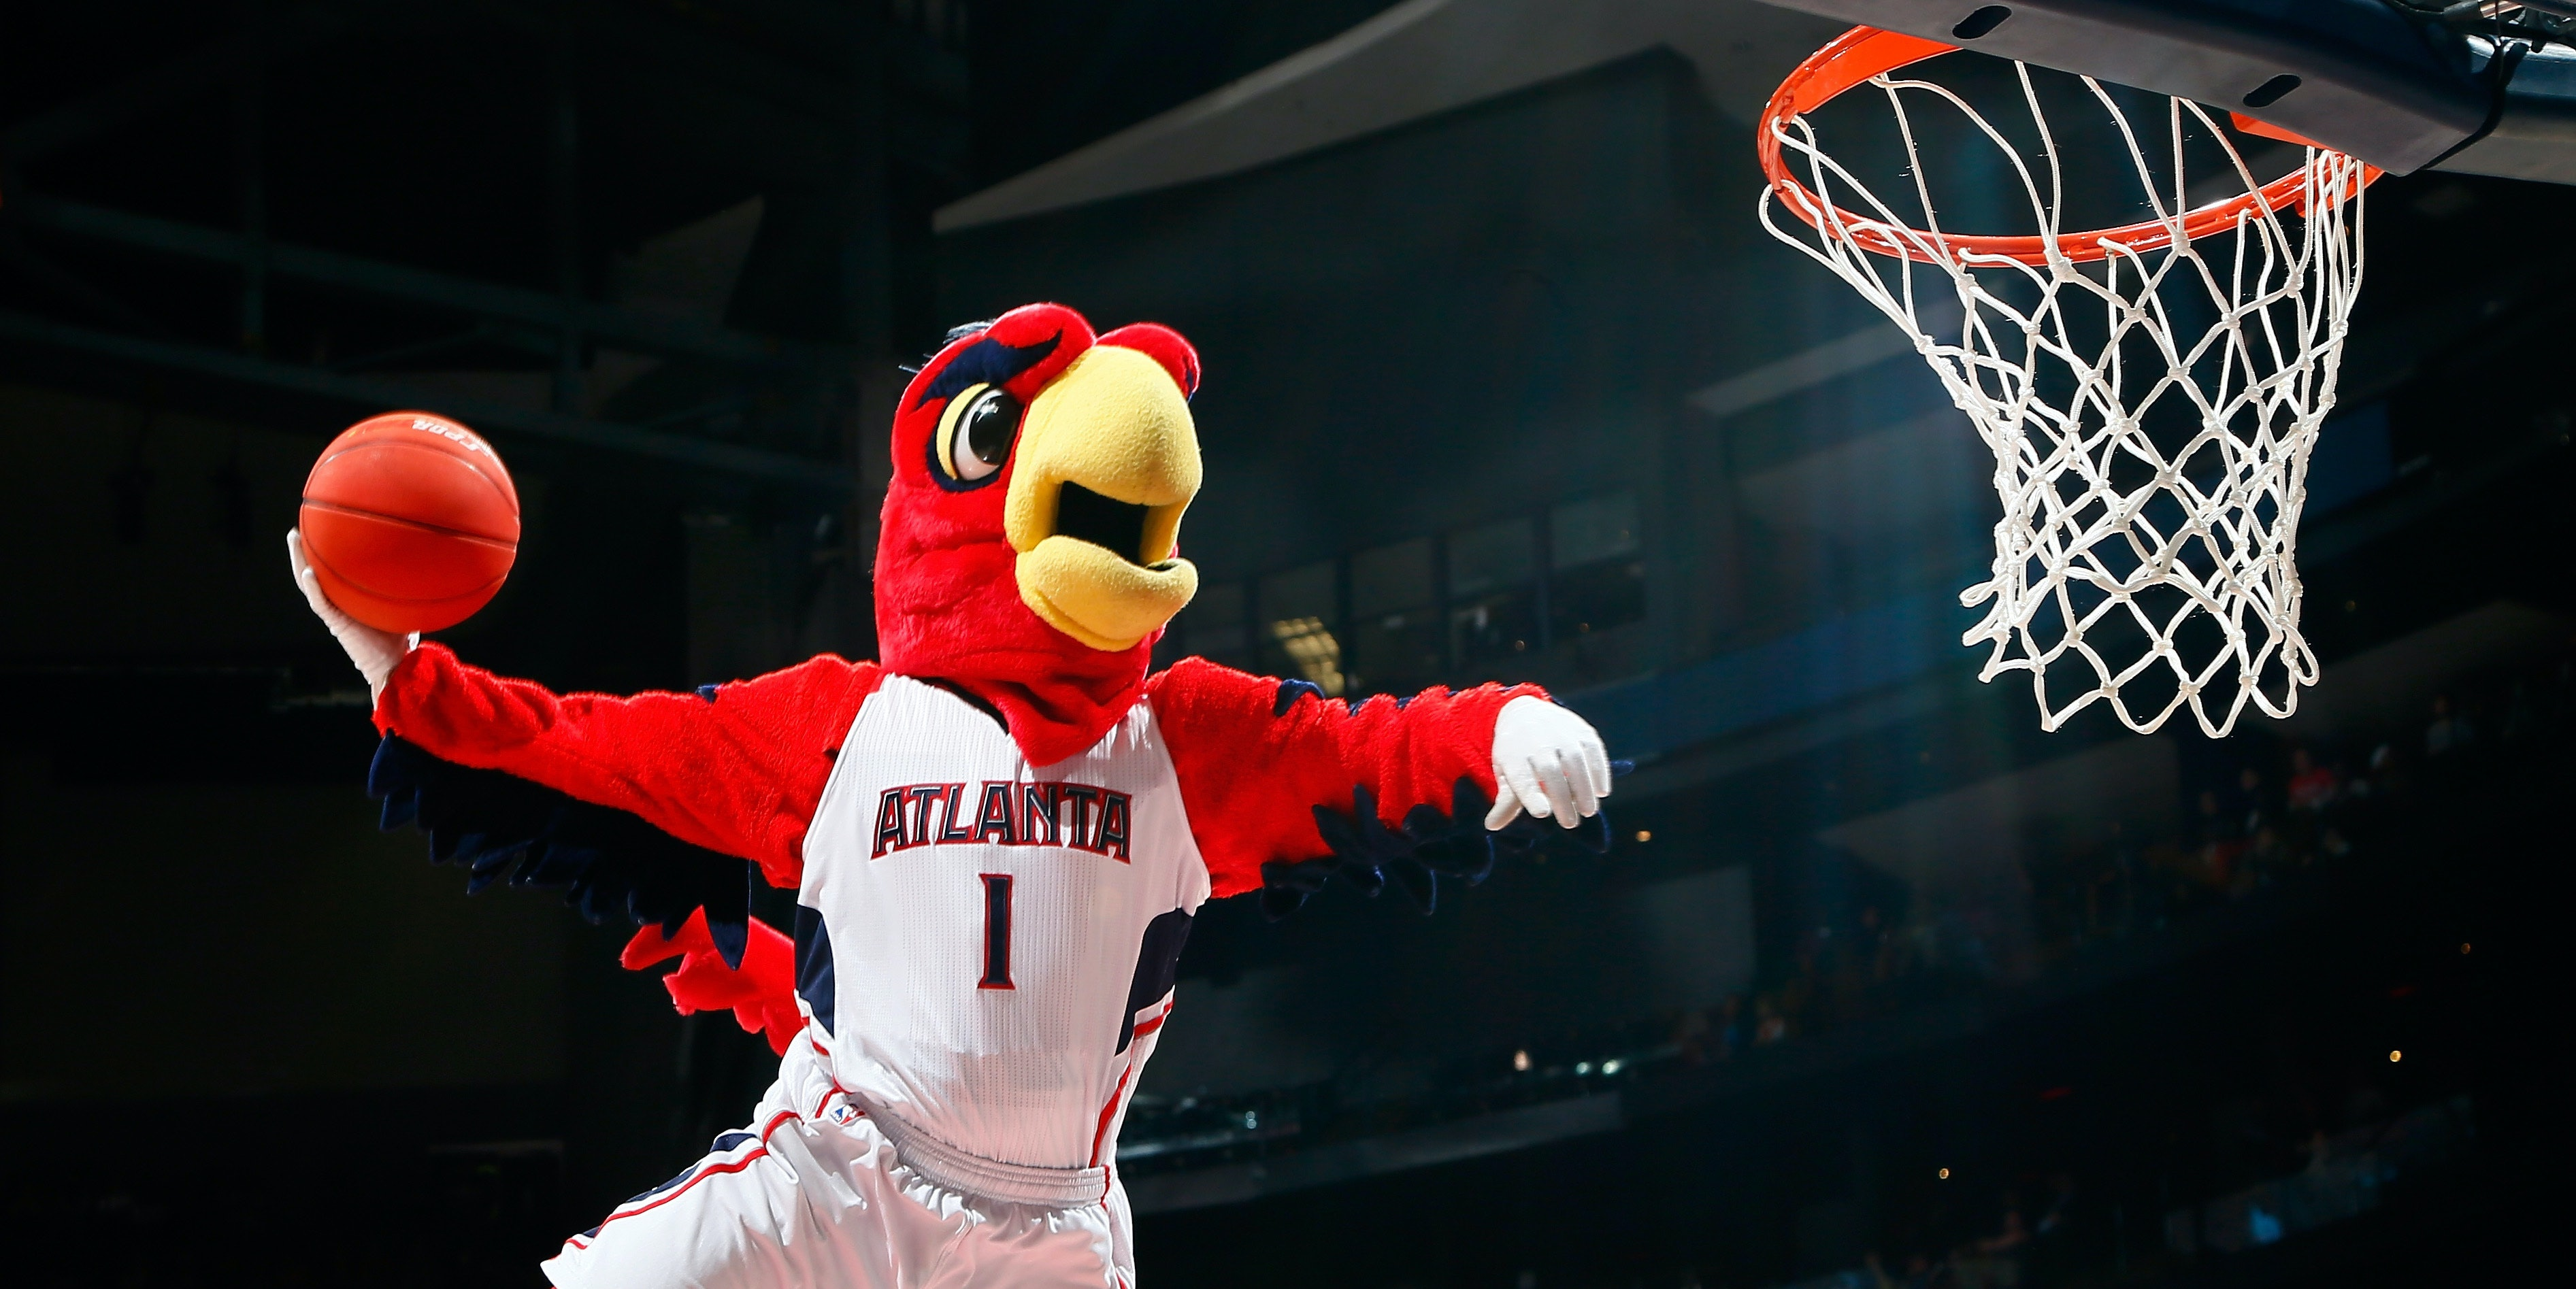 Harry the Hawk, mascot of the Atlanta Hawks, dunks during a timeout in the game between the Atlanta Hawks and the Brooklyn Nets at Philips Arena on January 28, 2015 in Atlanta, Georgia.